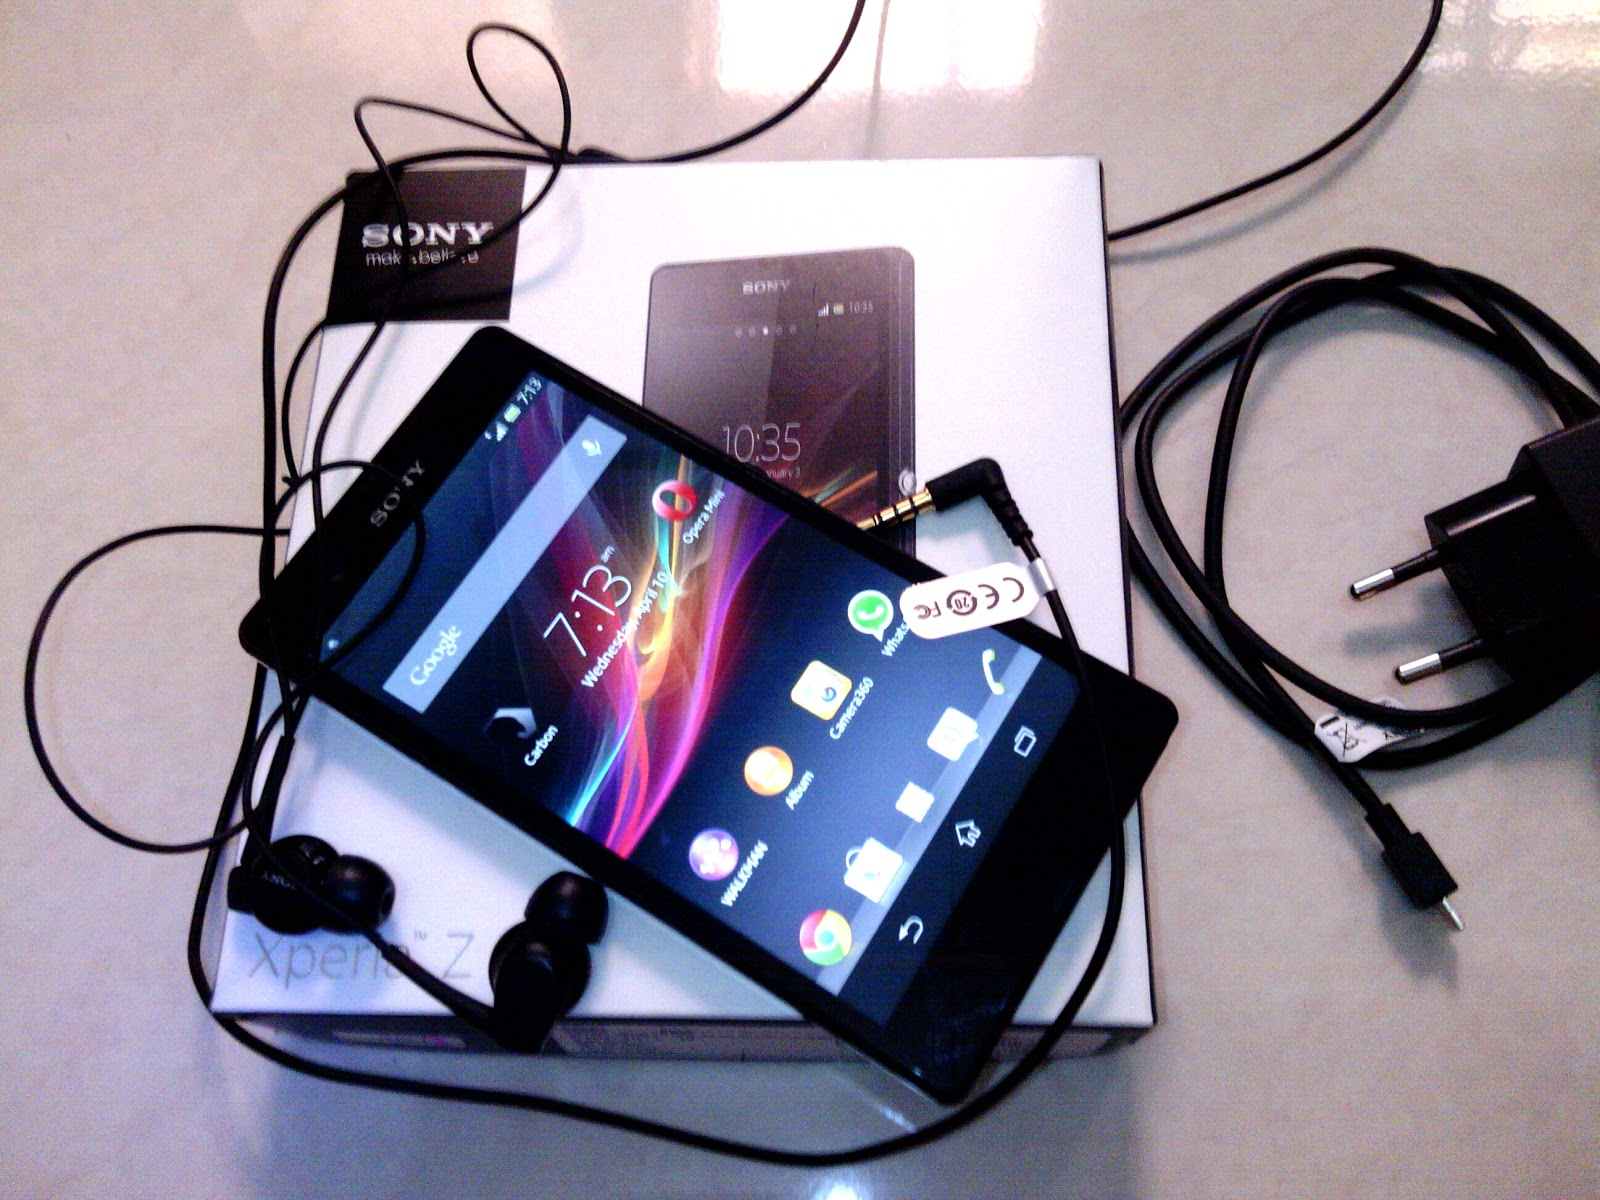 Paket penjualan Sony Xperia Z handset Xperia Z charger USB earphone SONY